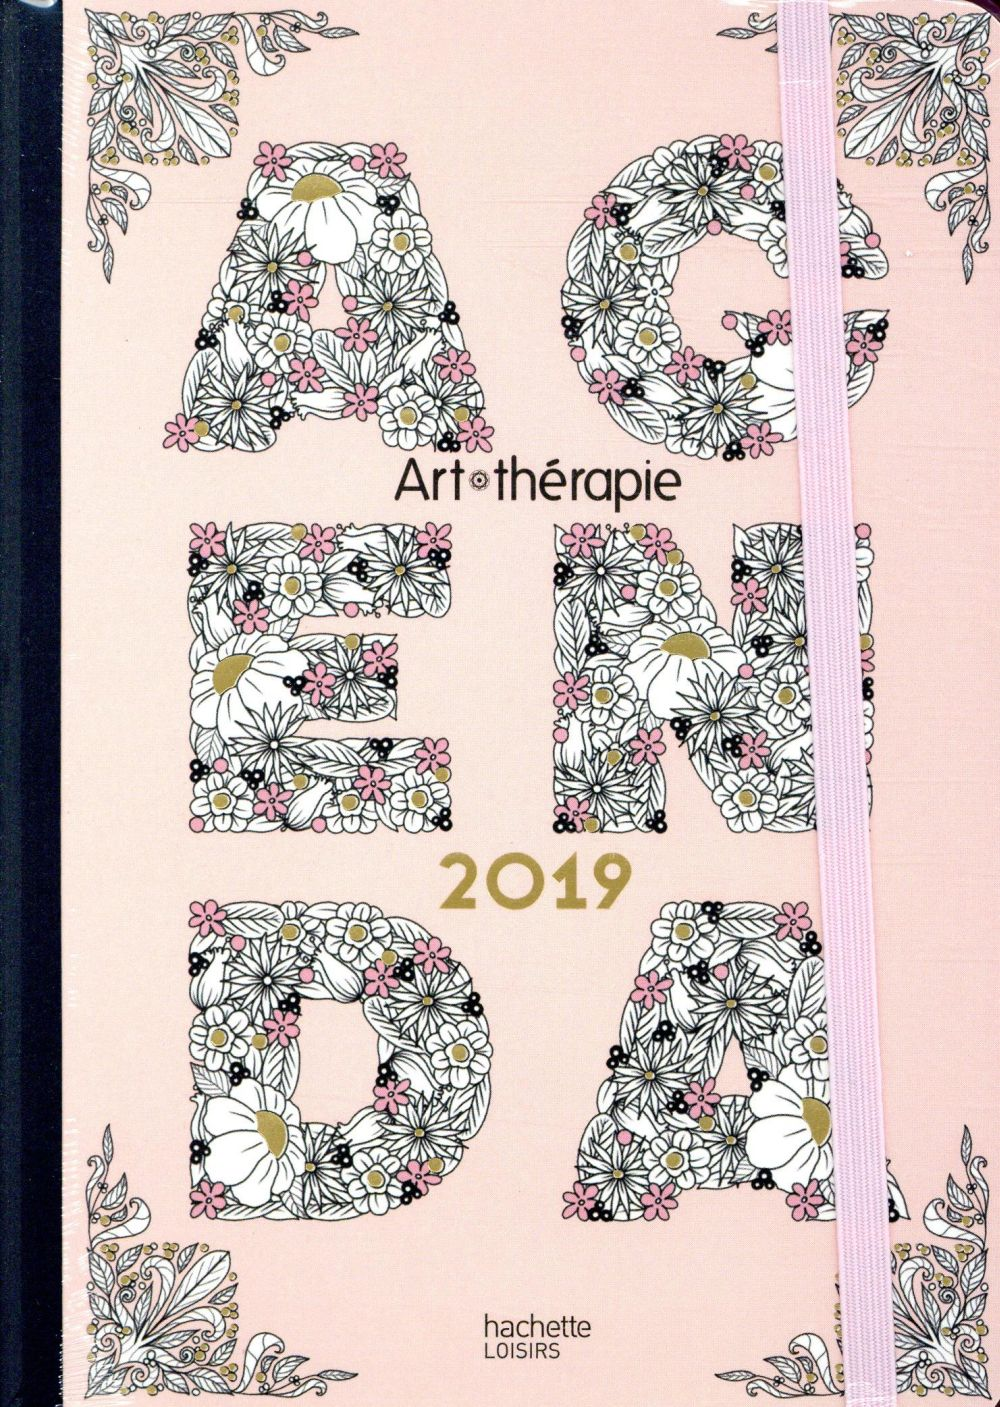 AGENDA ART-THERAPIE 2019